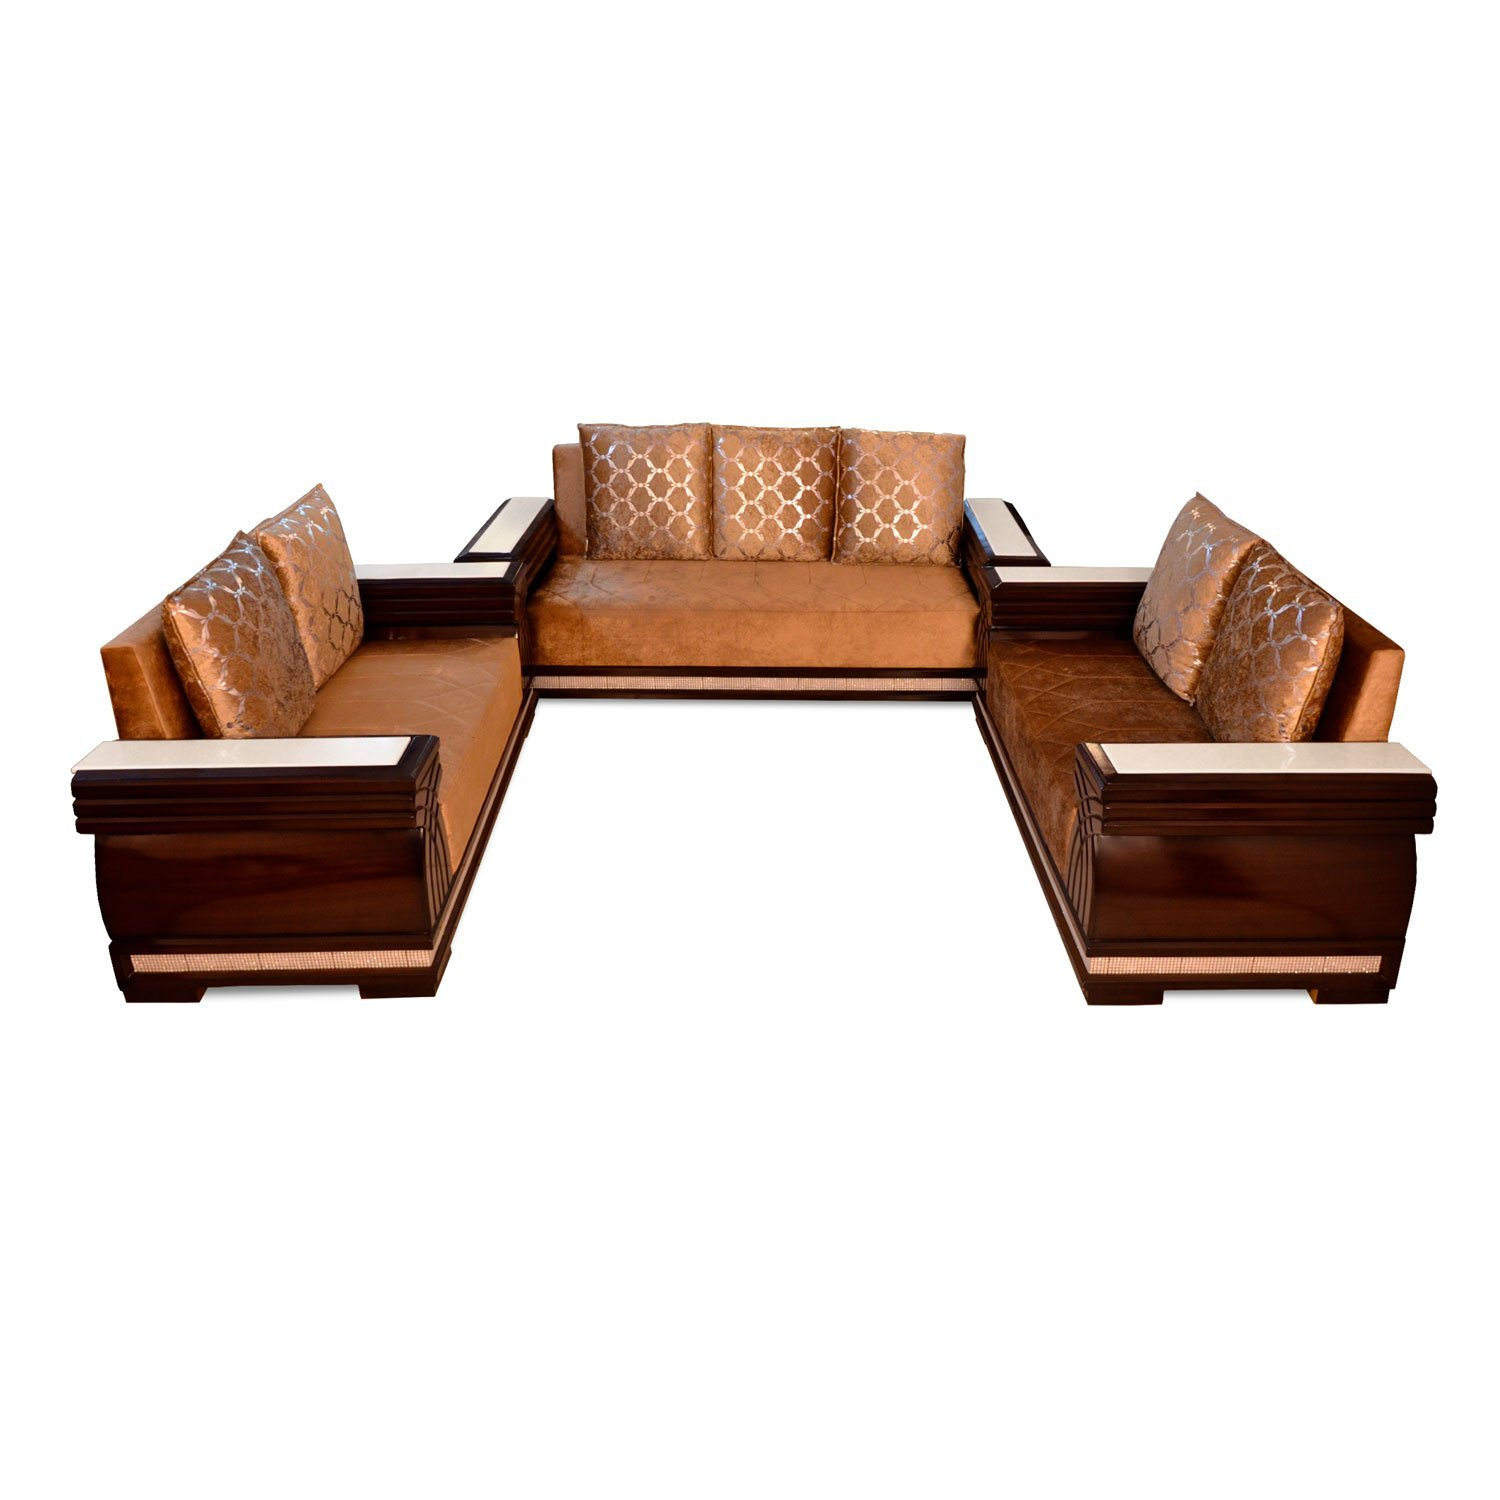 Sofa Set For Drawing Room With Price 7 Seater Sofa Set Living Room Furniture Sets Affordable